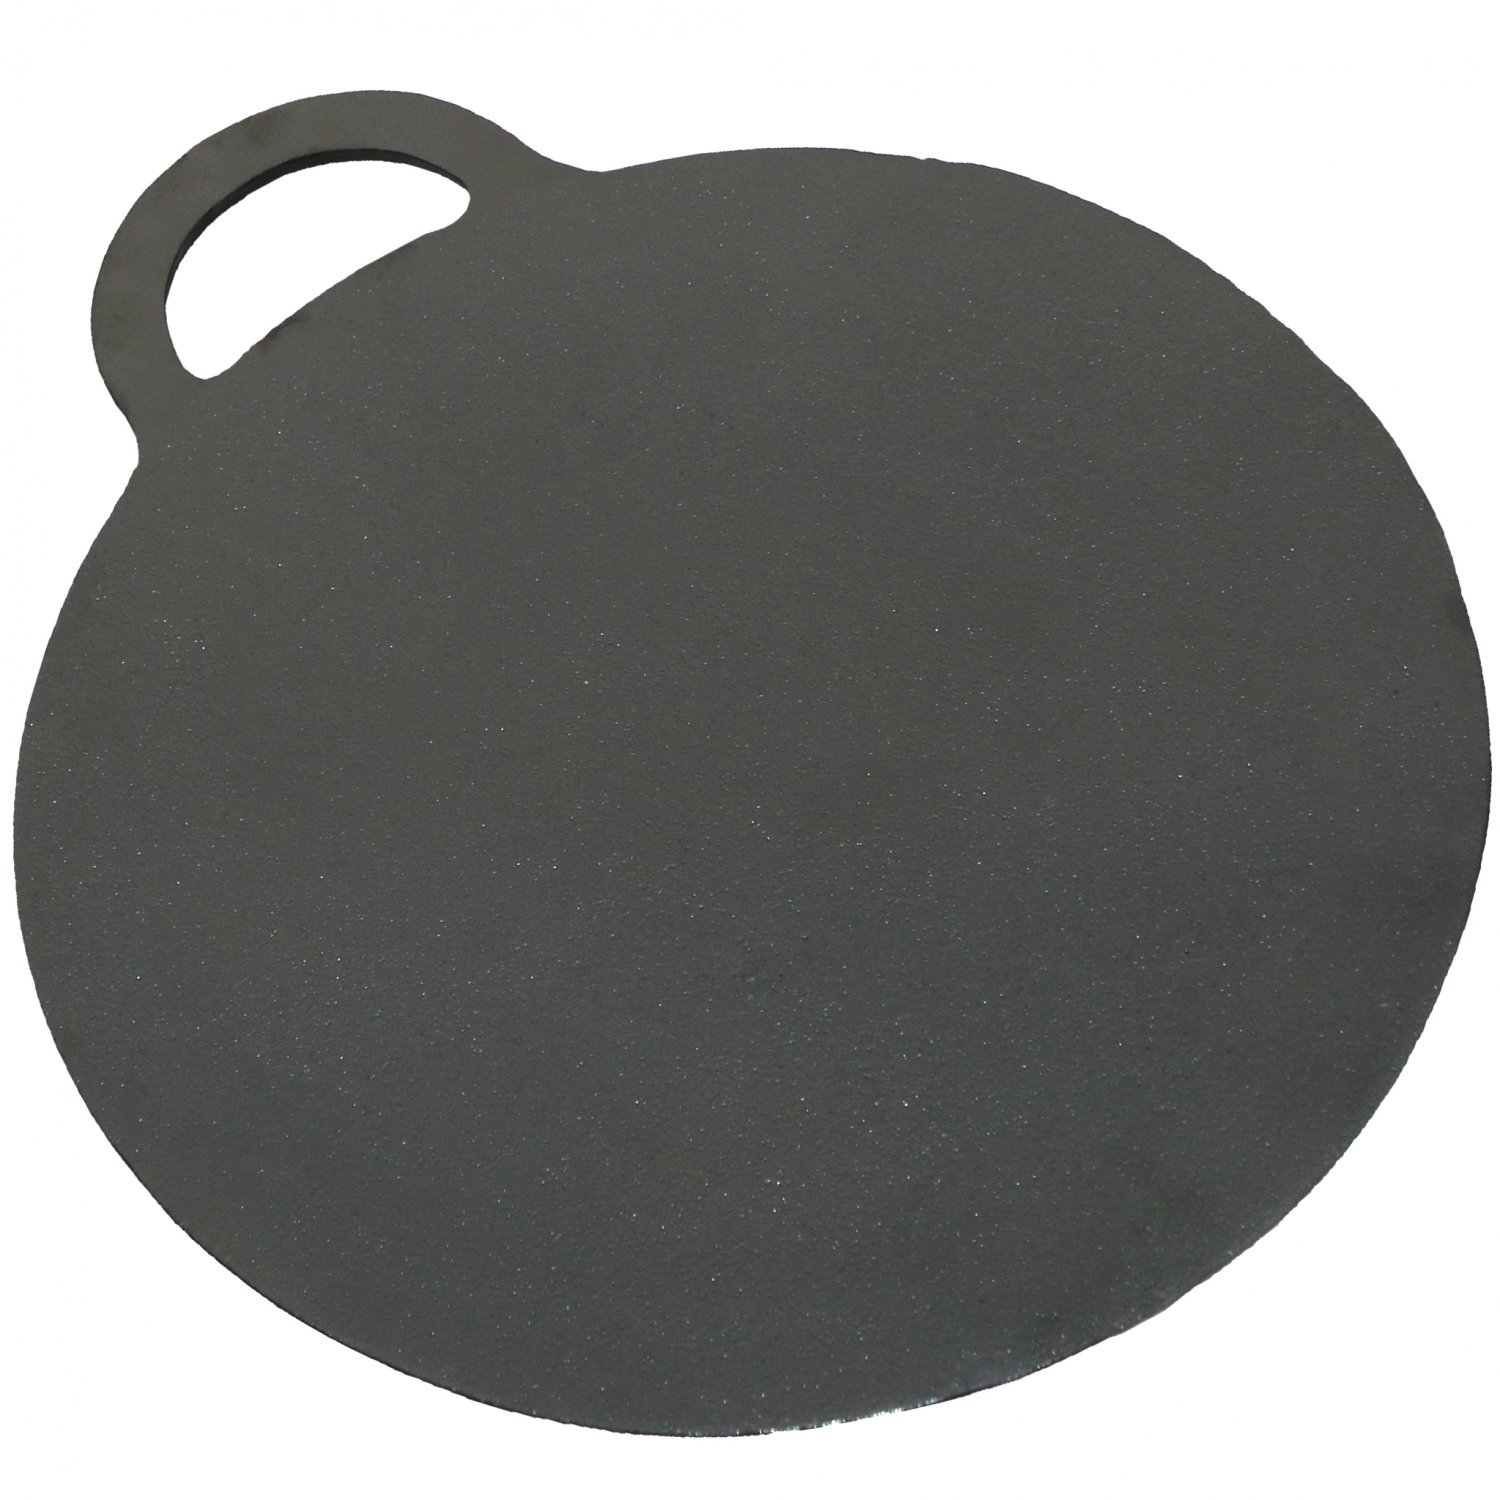 30cm Cast Iron Seasoned Baking Stone Cooking Skillet Griddle